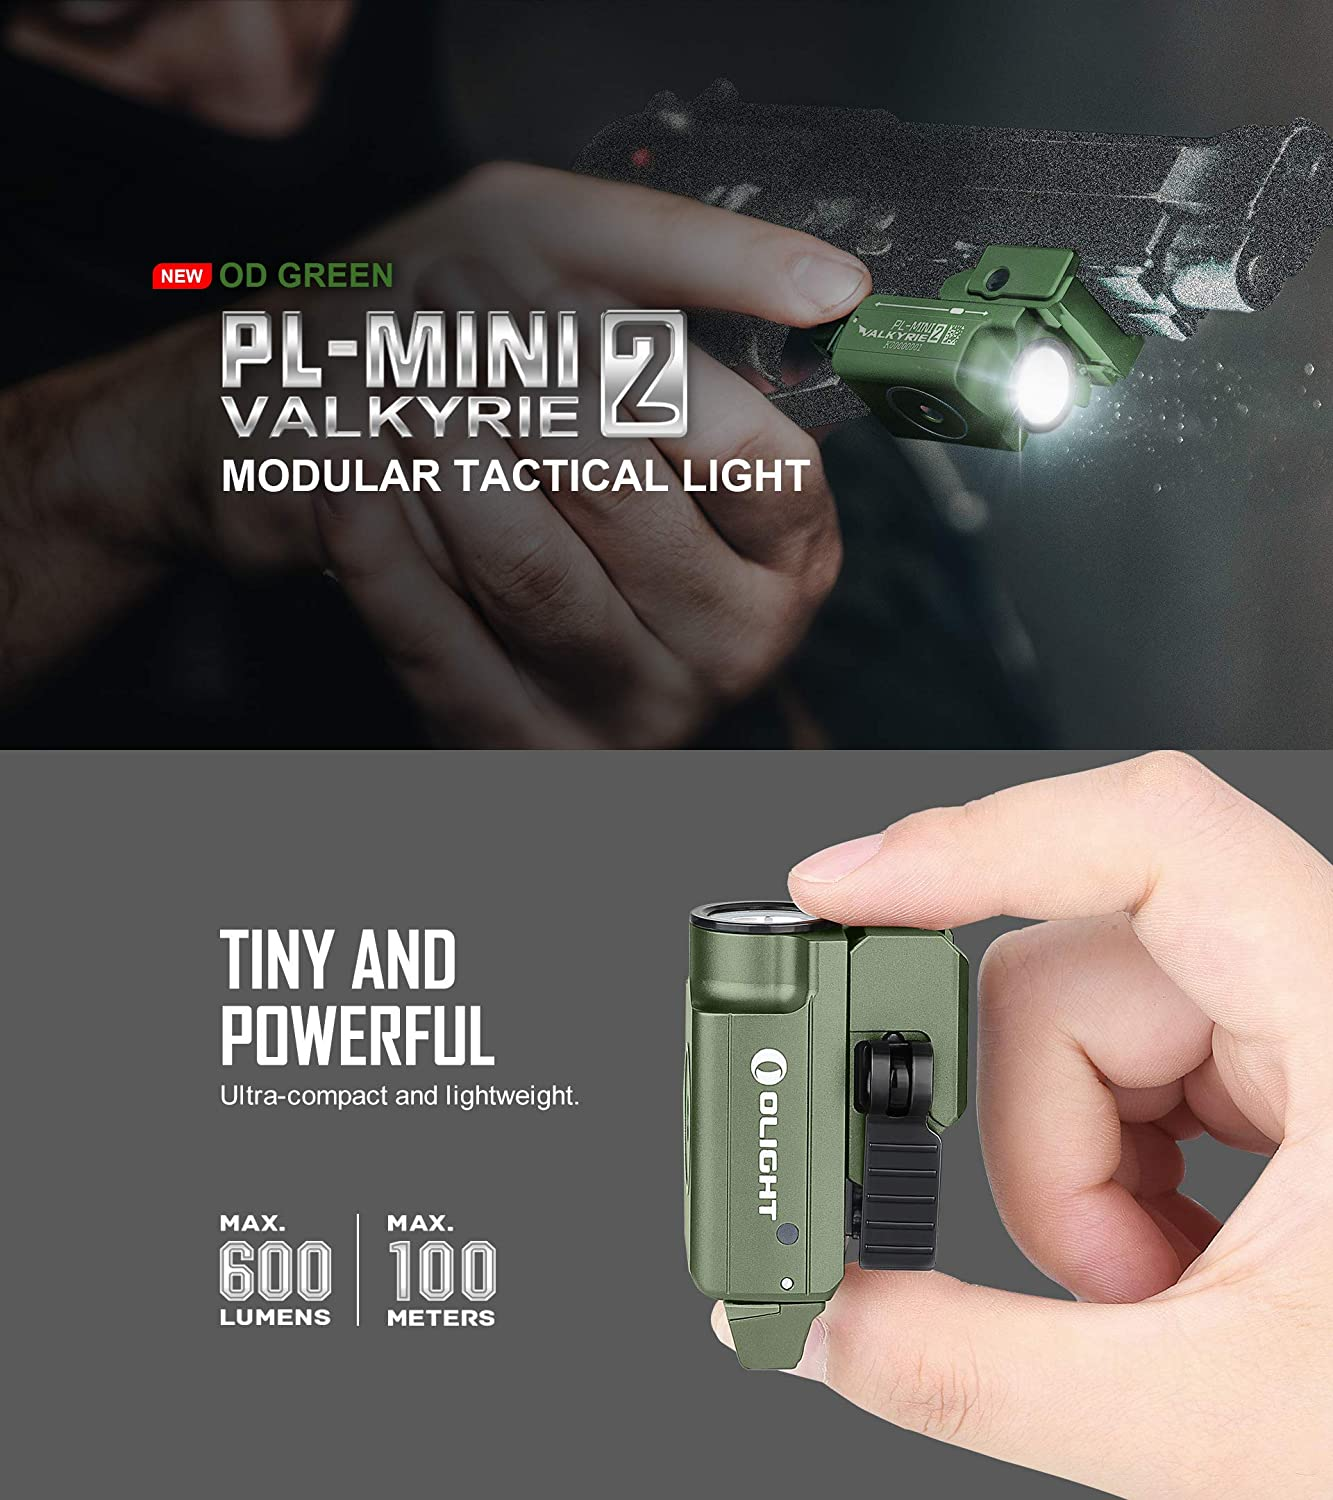 Details about  /OLIGHT PL-MINI 2 Valkyrie OD Green 600 Lms Magnetic Charging Pistol Flashlight